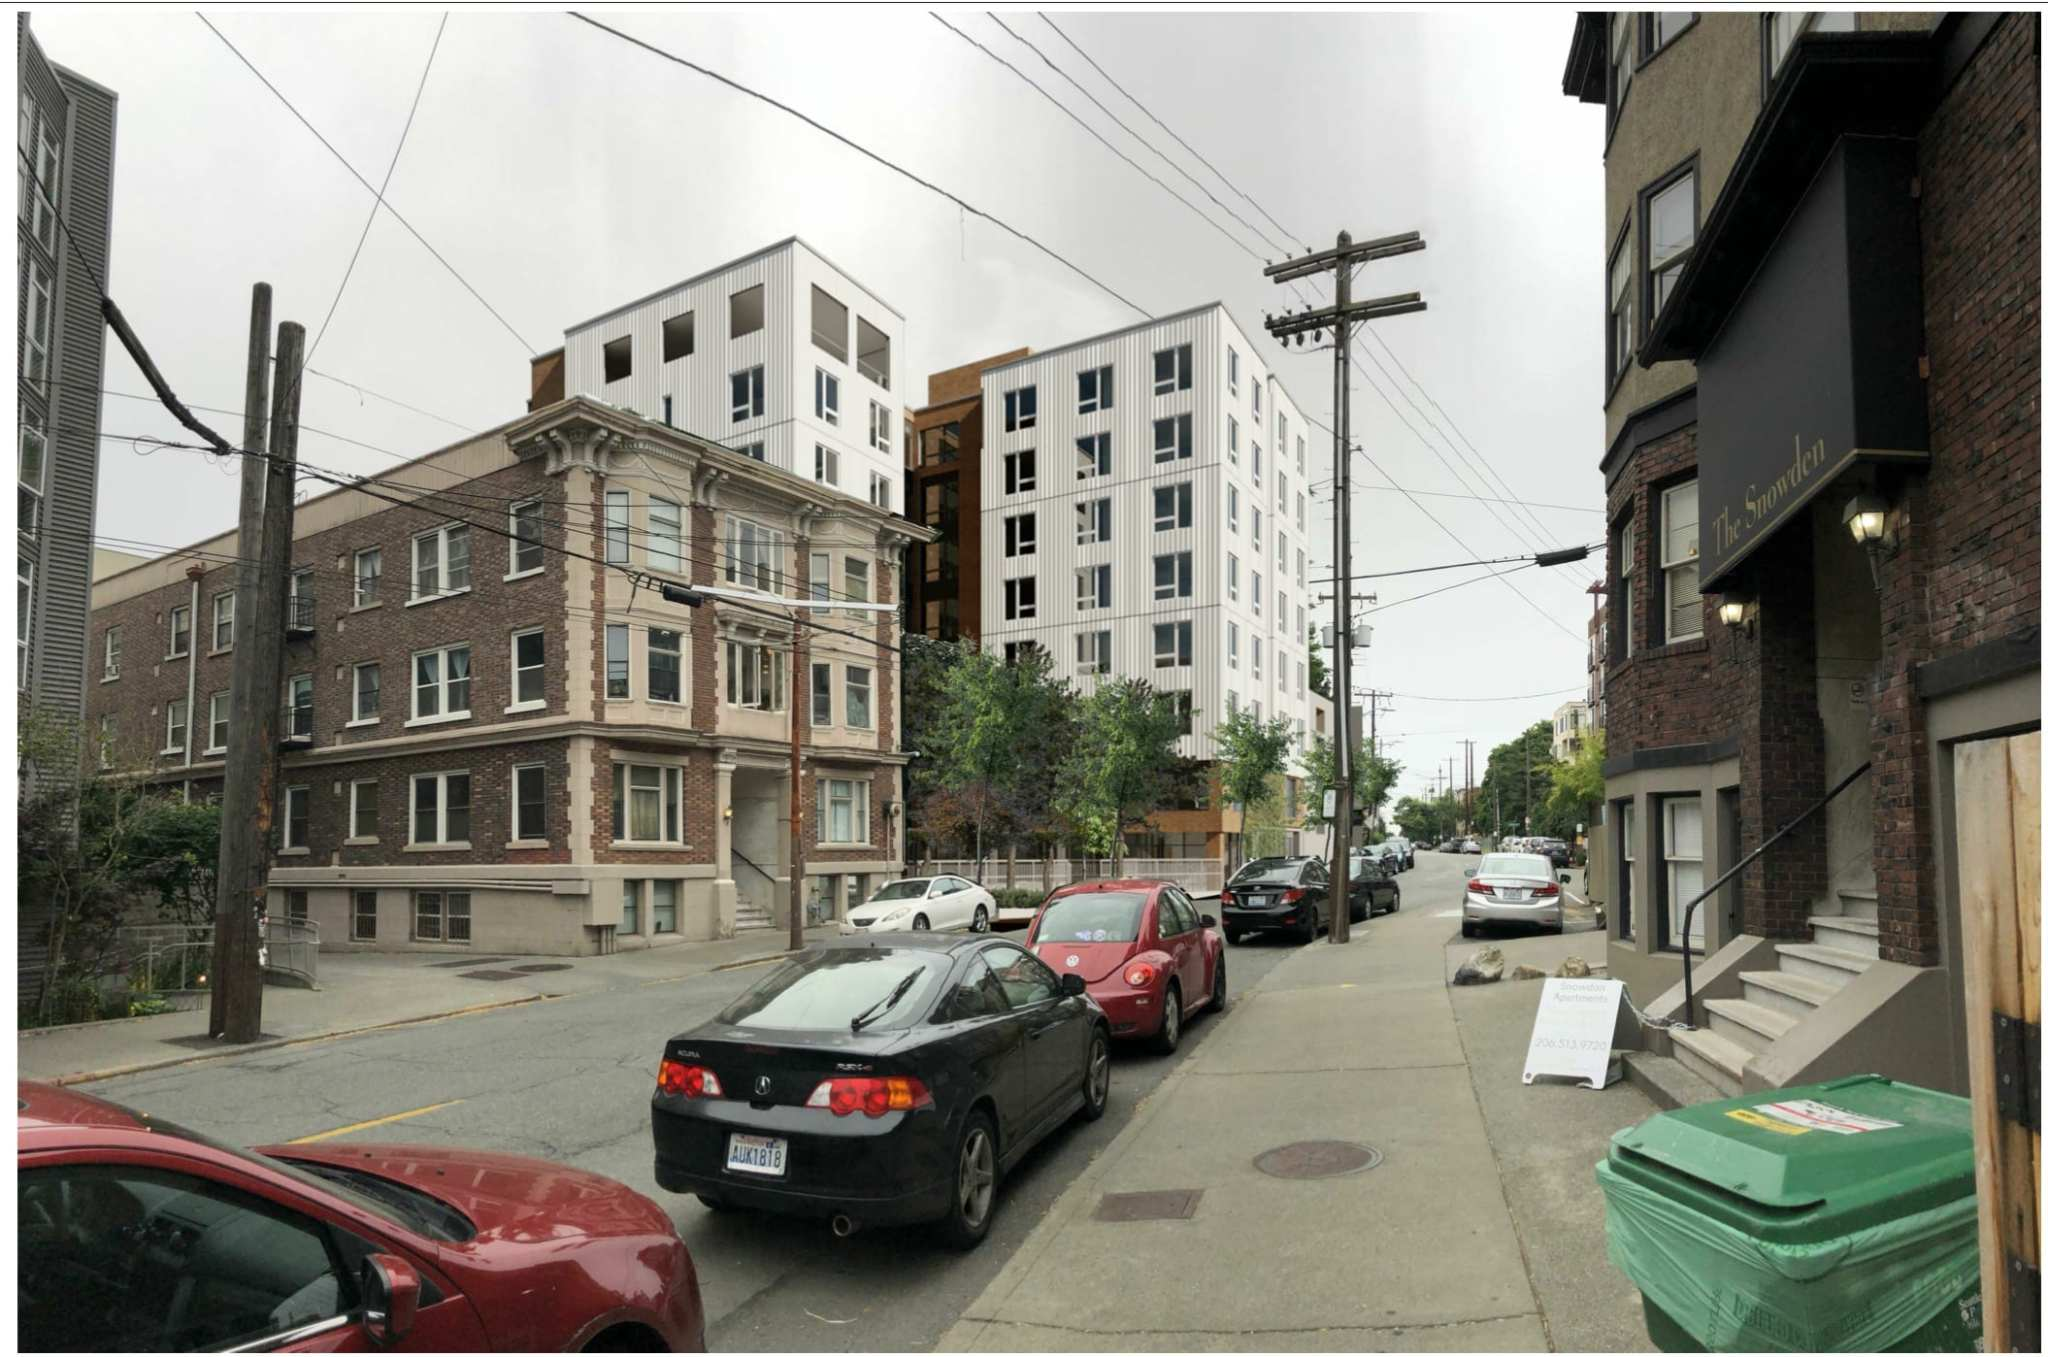 Surrounded by taller buildings with room for more people on all sides, two 1906-built houses set to finally make way for development on Bellevue Ave E